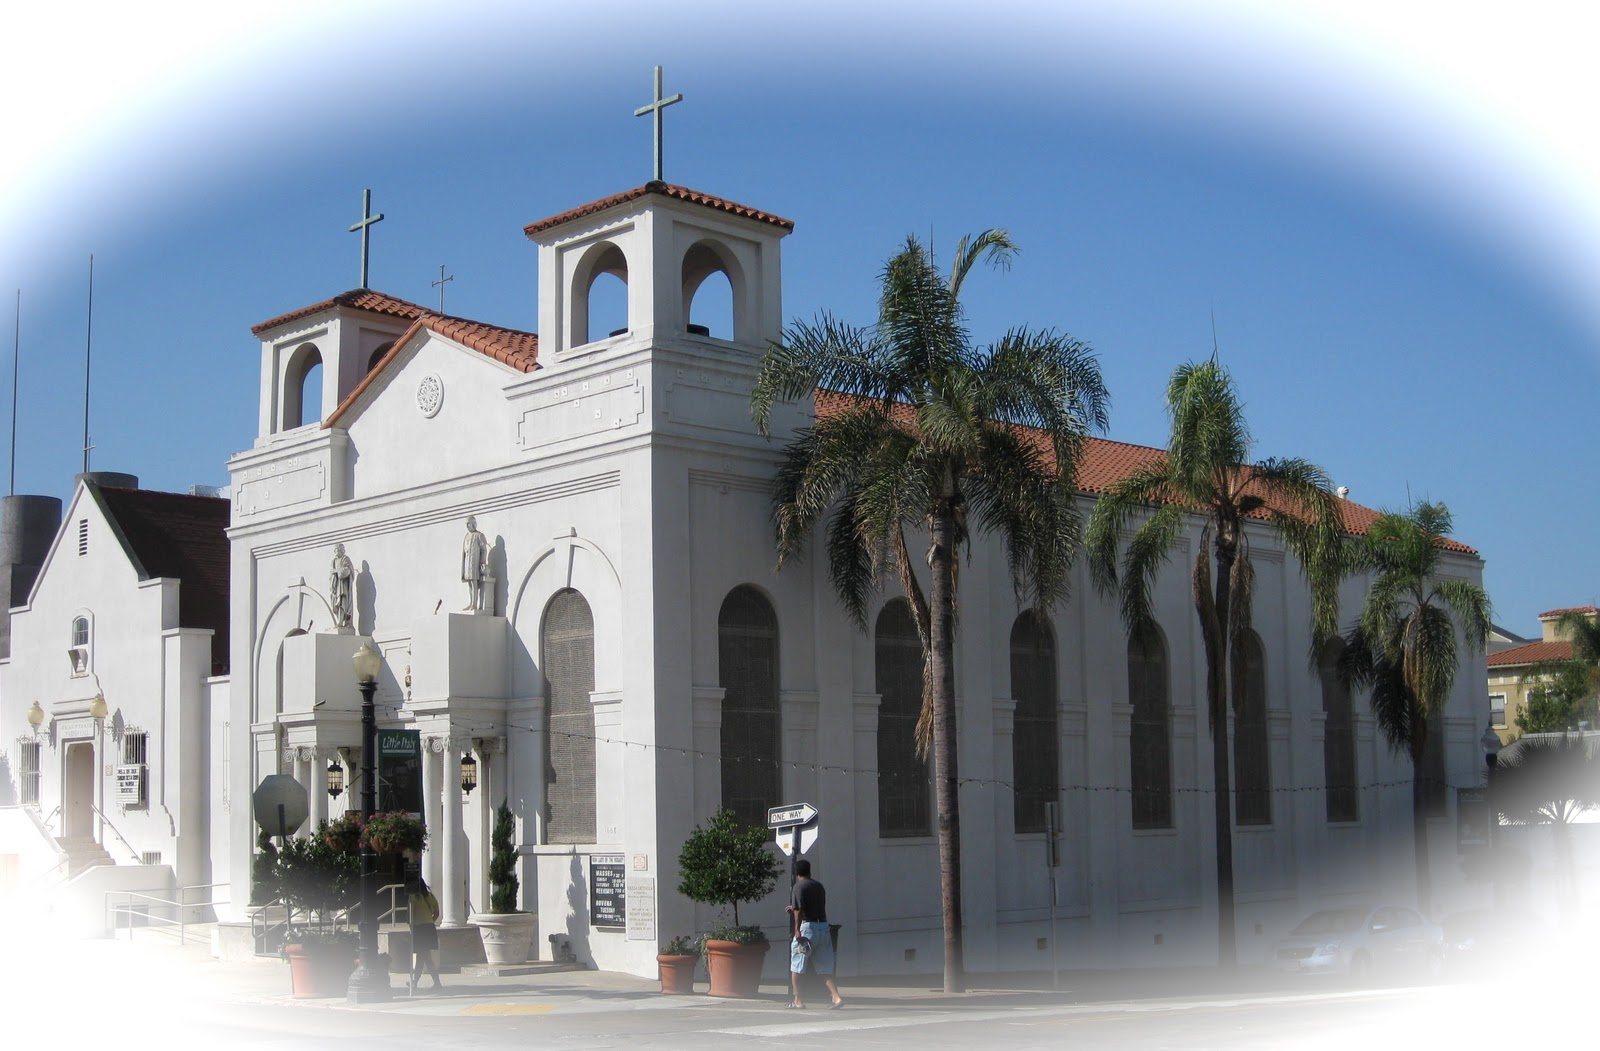 Quince Street Bridge San Diego, Fr. Steven M. Grancini, CRSP: Our Lady of the Rosary Catholic Church